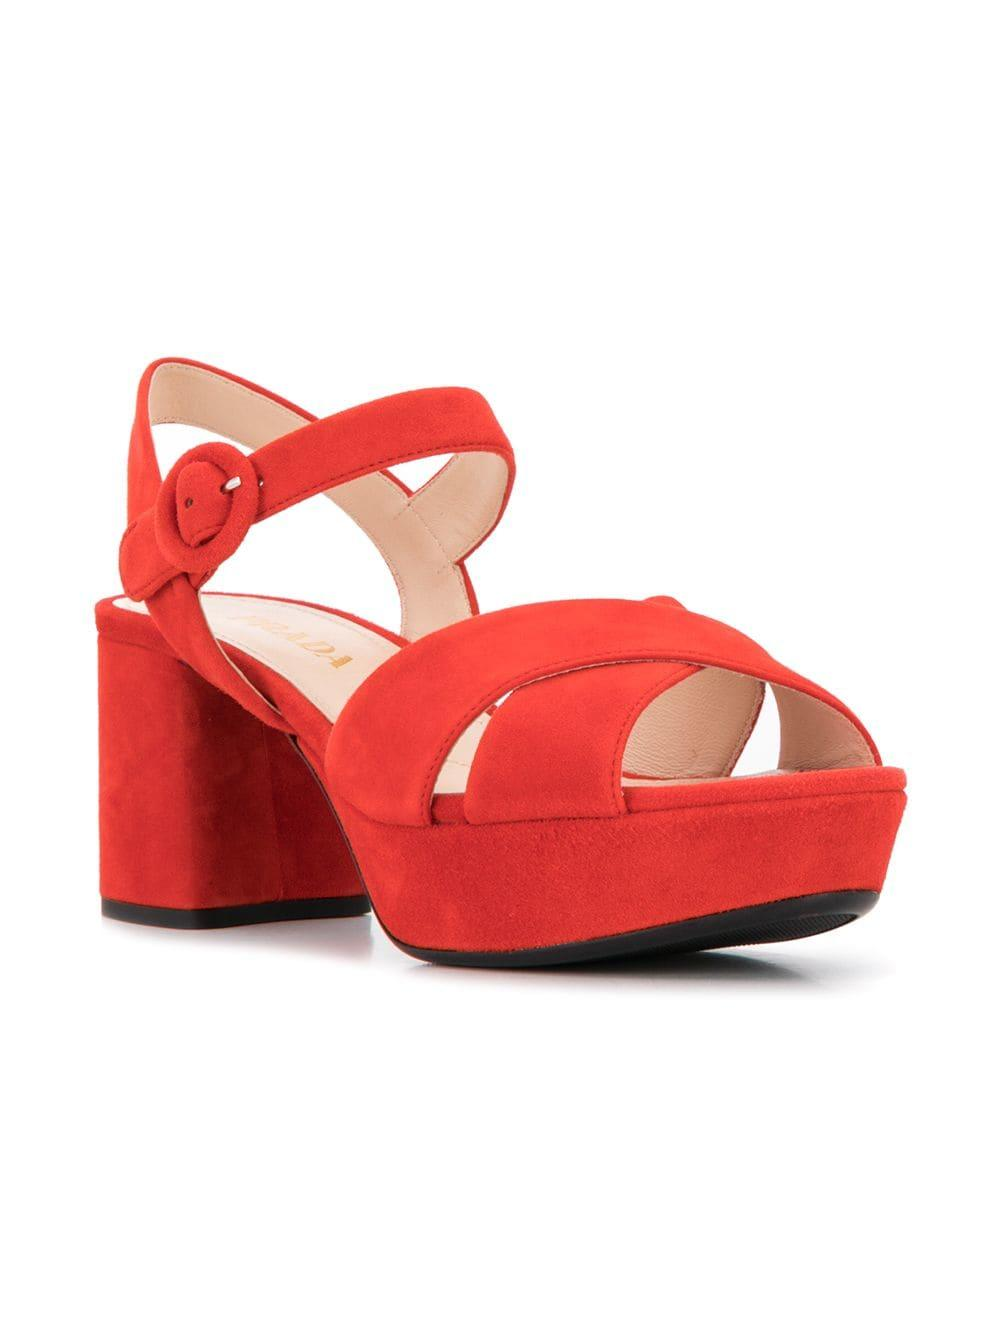 f9f3db59b8ab Lyst - Prada Mid High Platform Sandals in Red